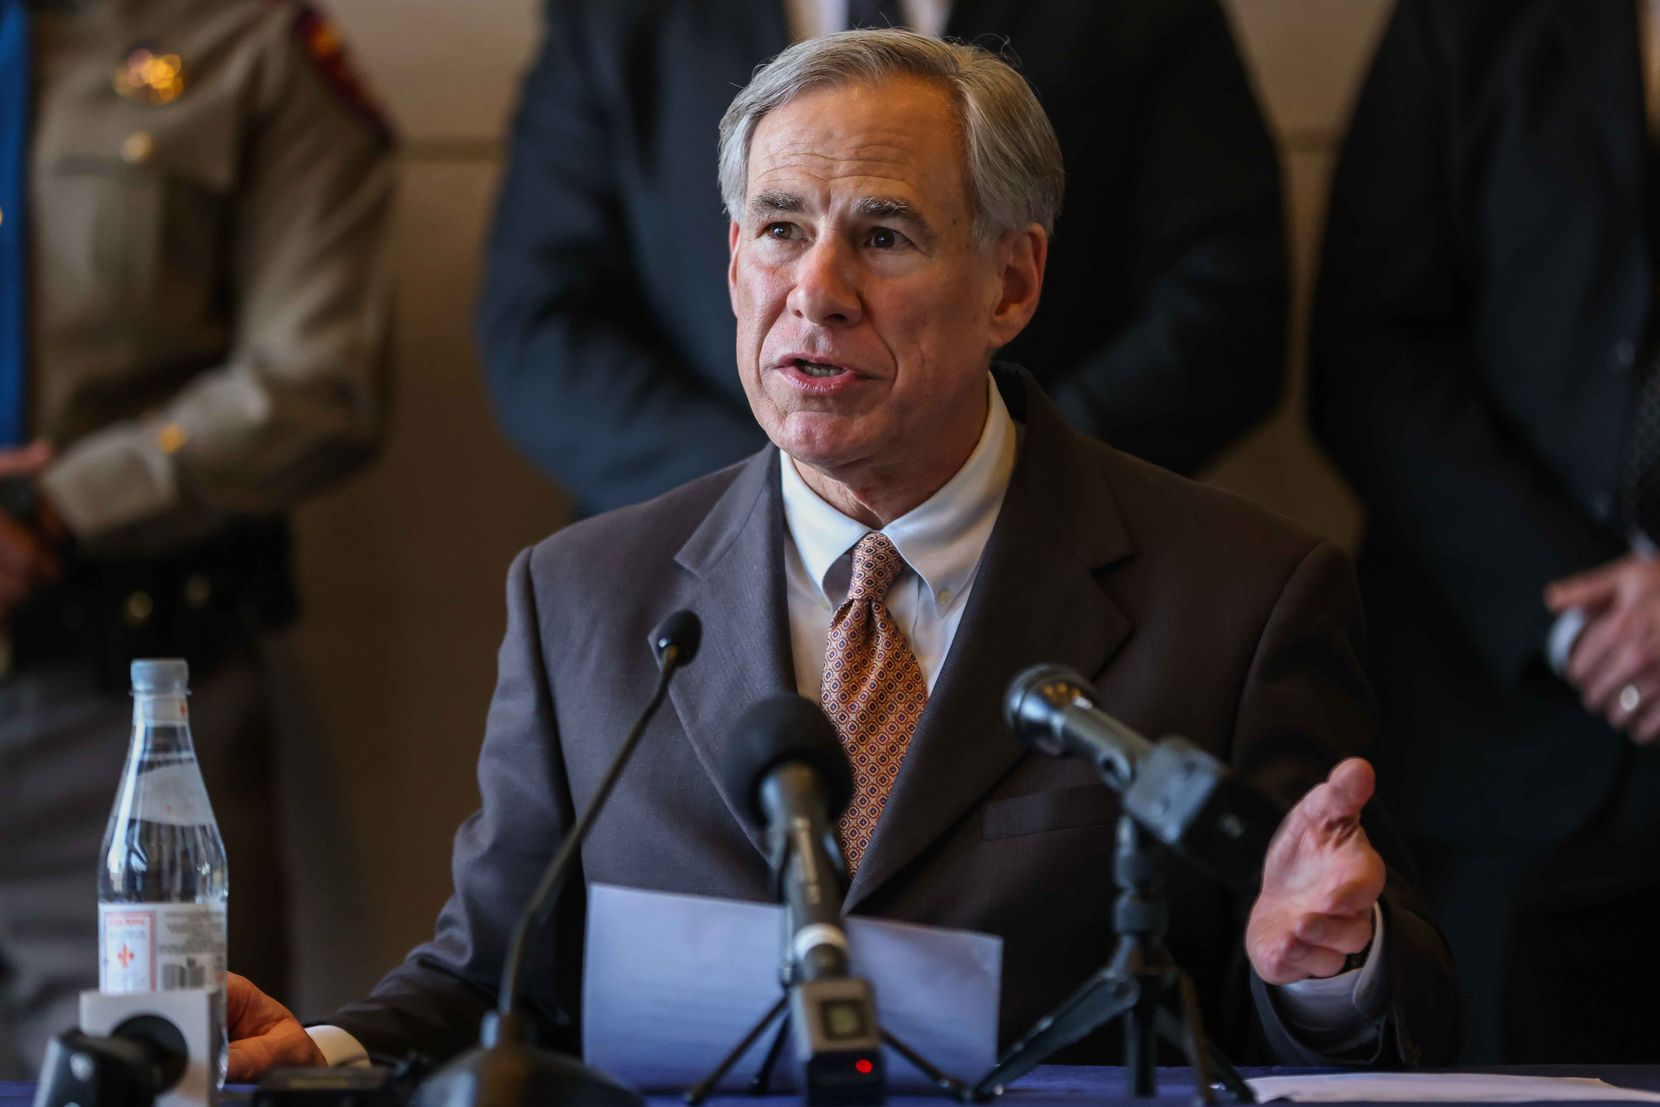 Controversial election and abortion laws have made Gov. Greg Abbott more of a national figure. (File Photo/Lola Gomez)